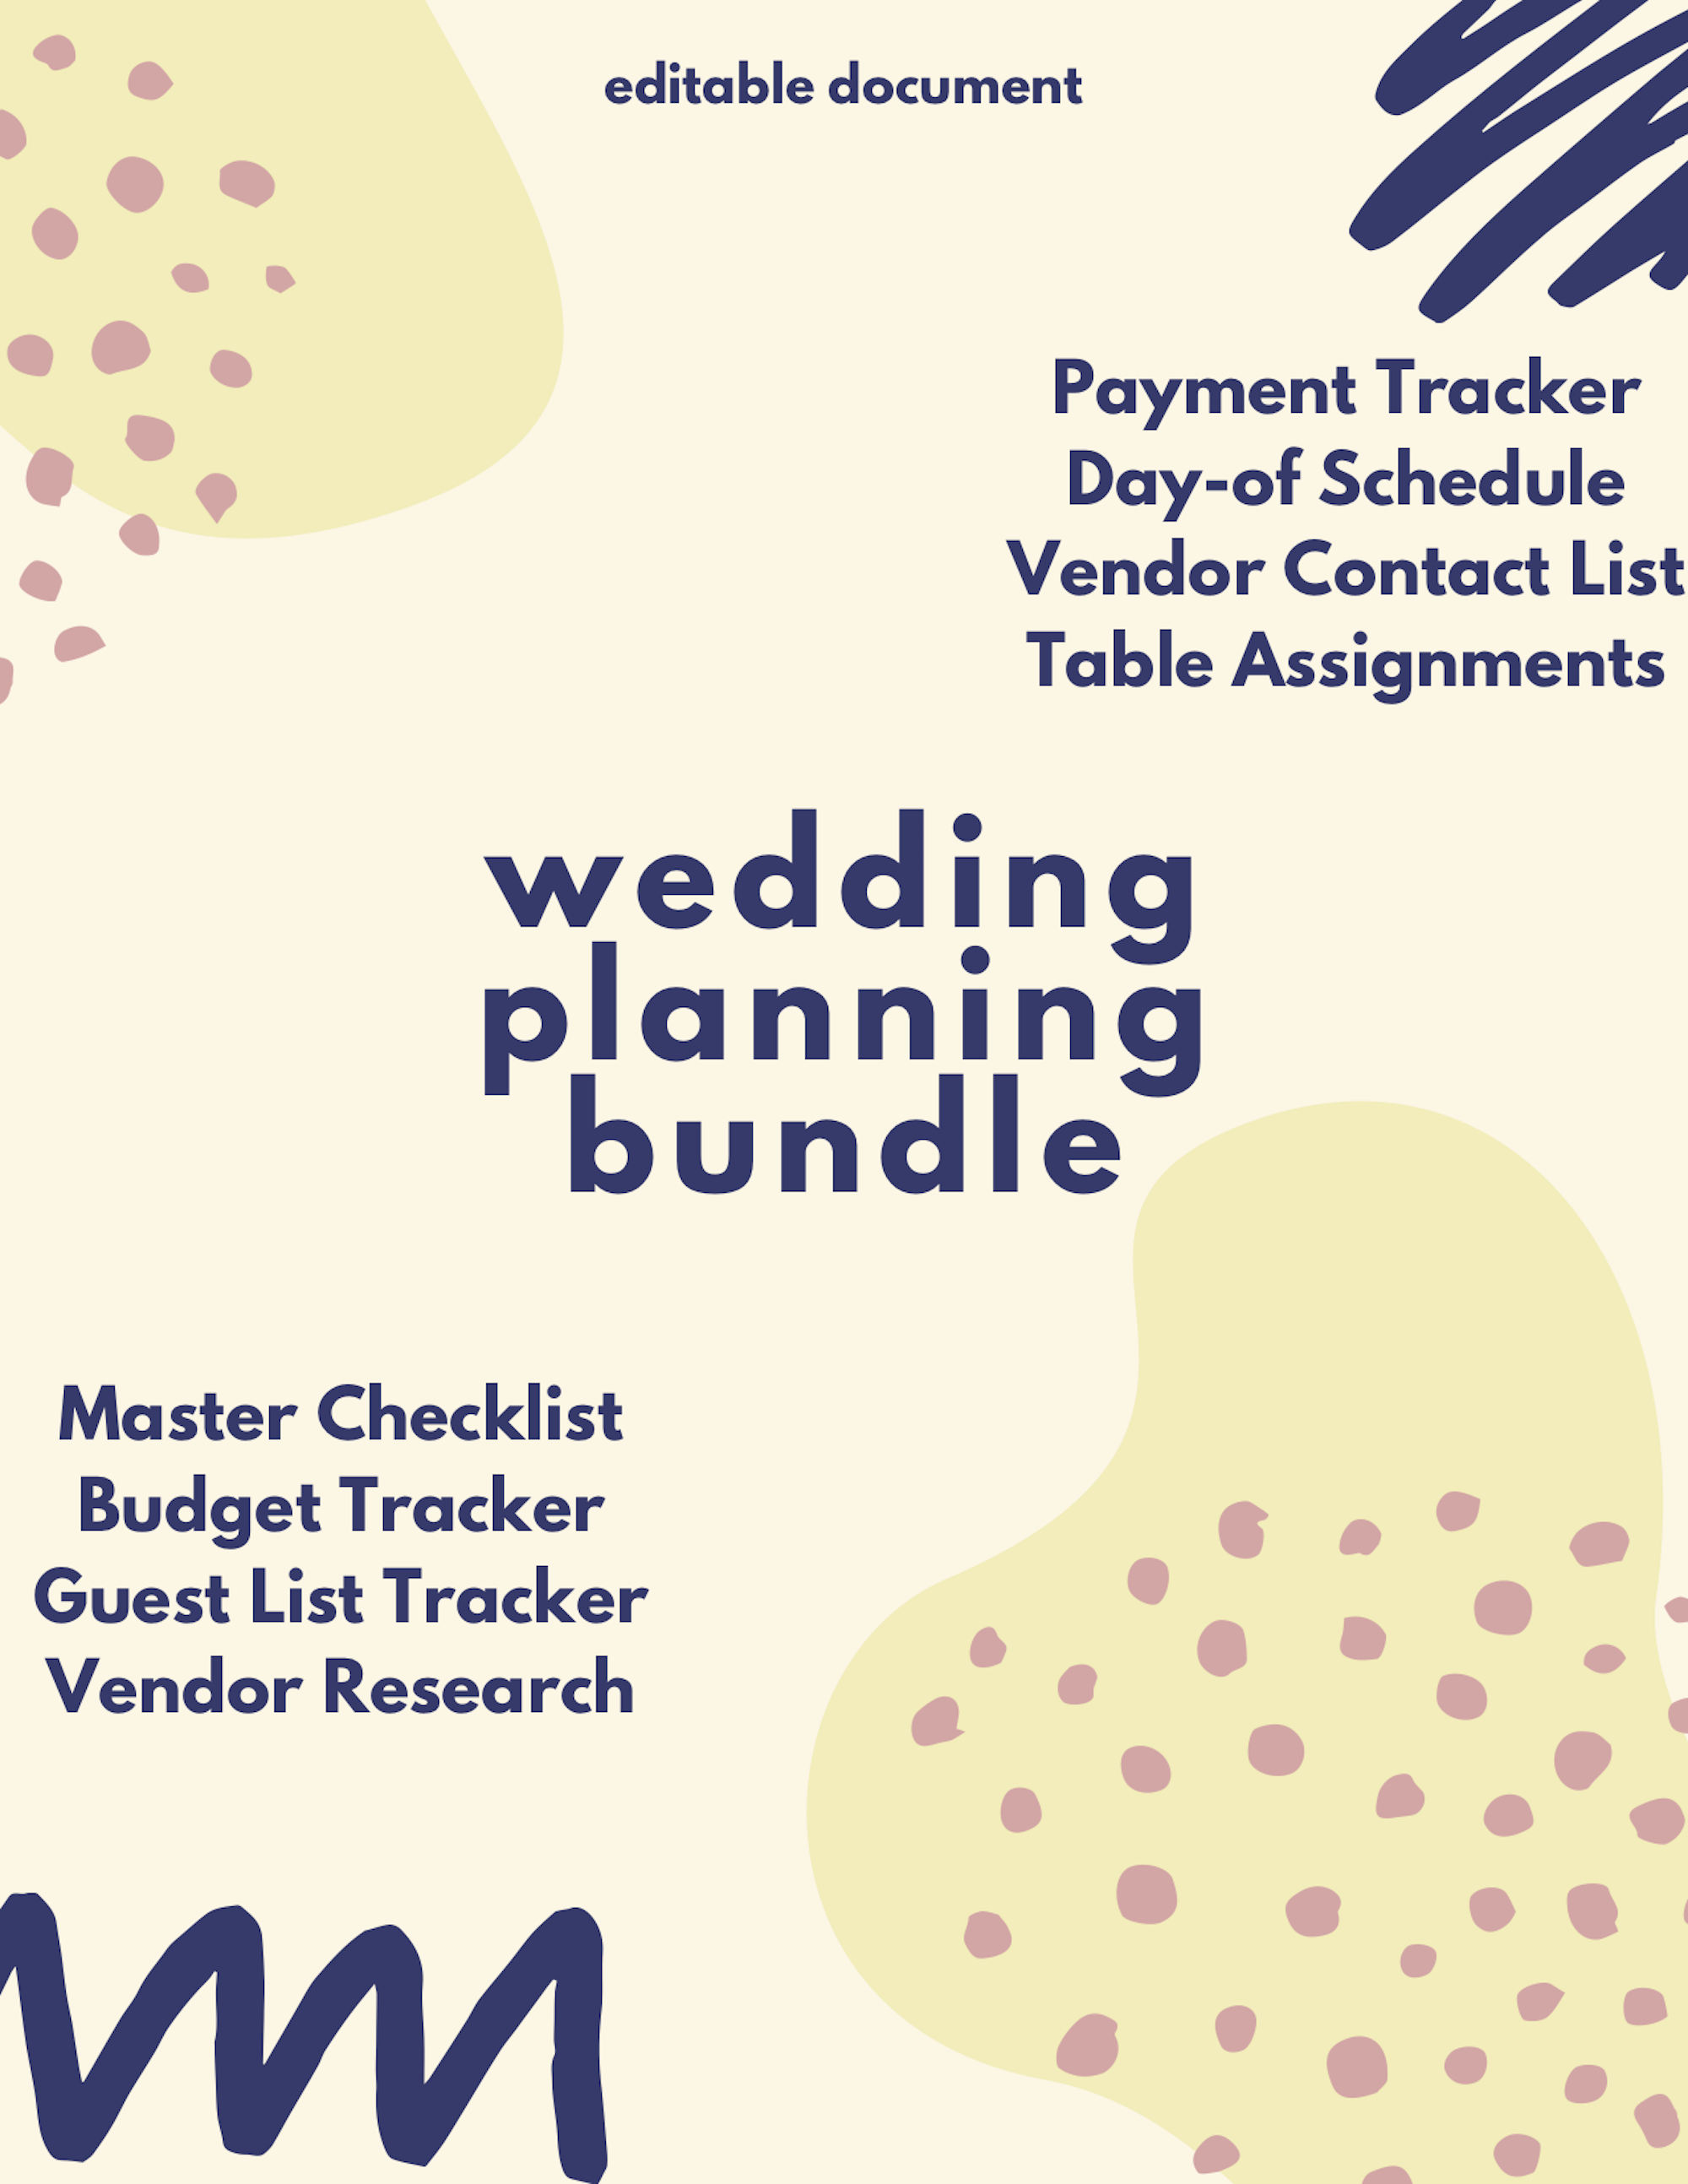 Comprehensive Wedding Planning Editable Document  Master | Etsy